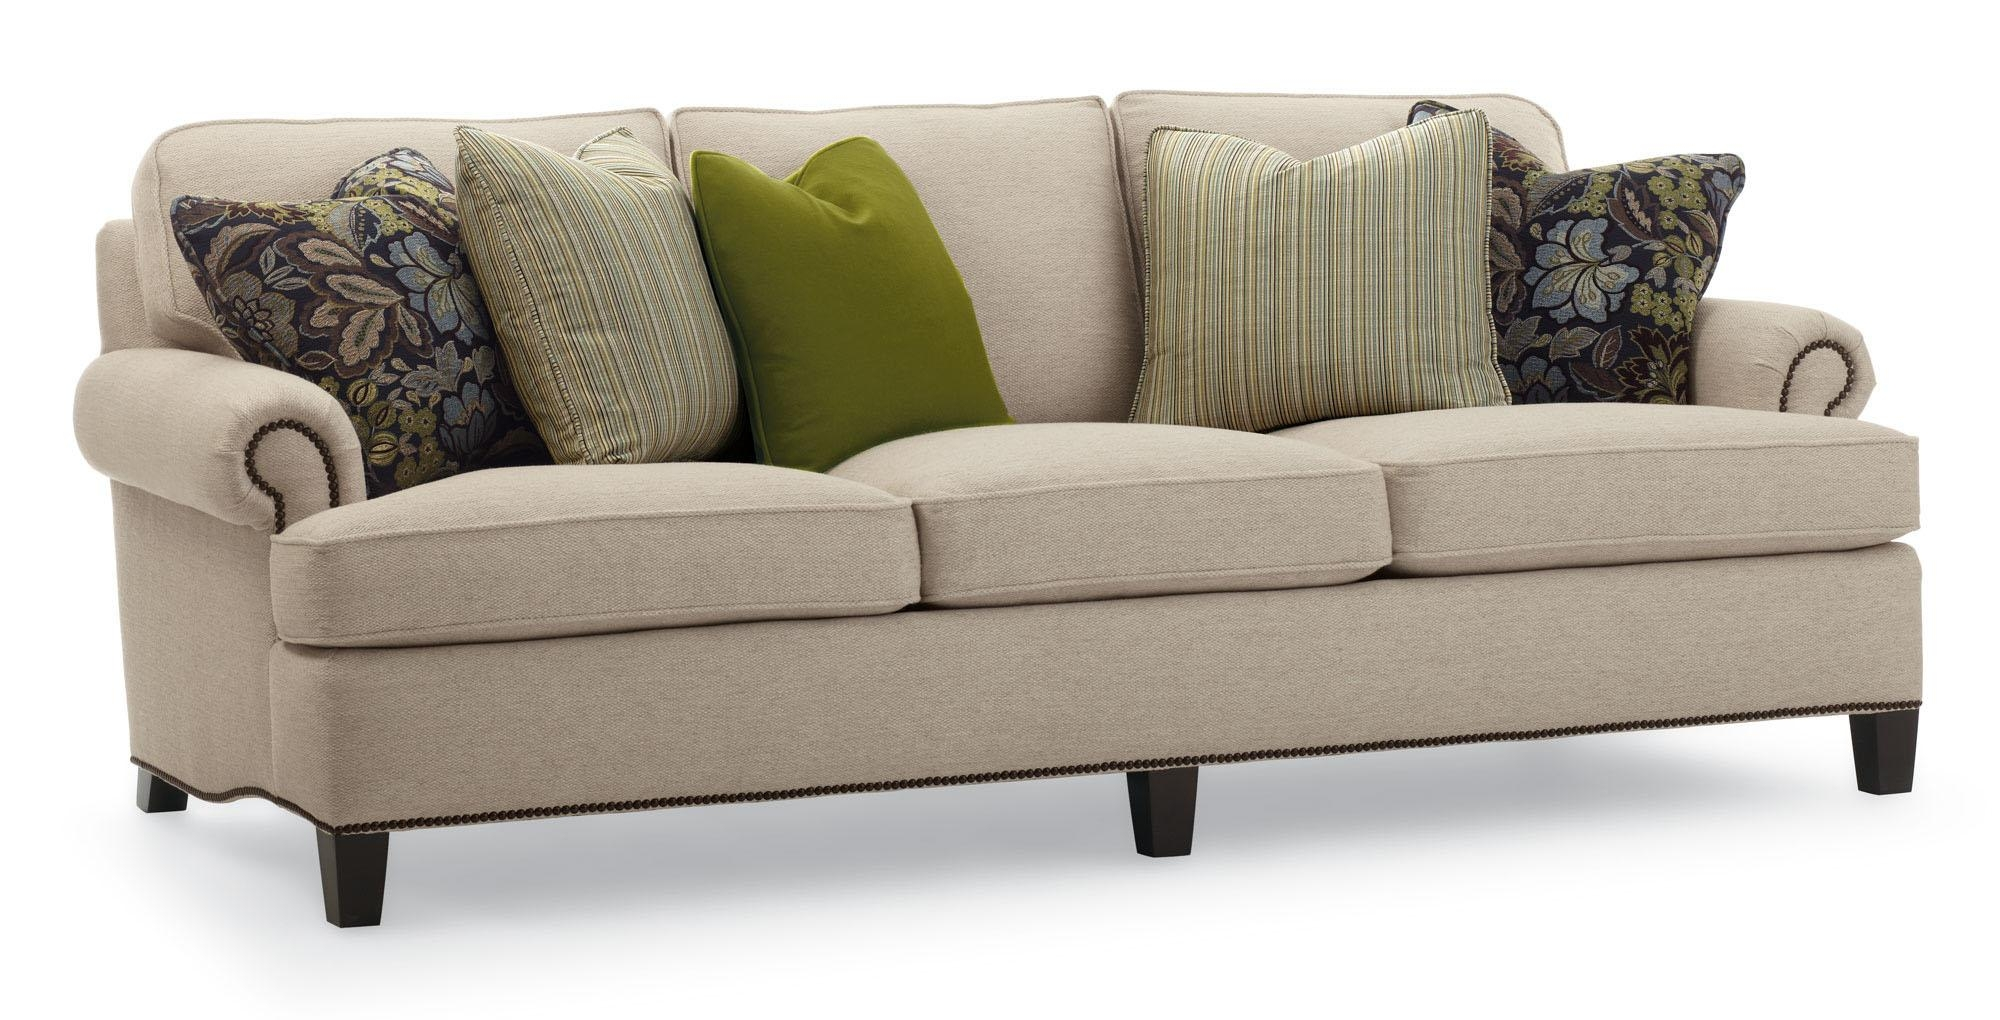 Best Of Bernhardt Brae Sofa | Cochabamba Throughout Bernhardt Brae Sofas  (Image 8 Of 20